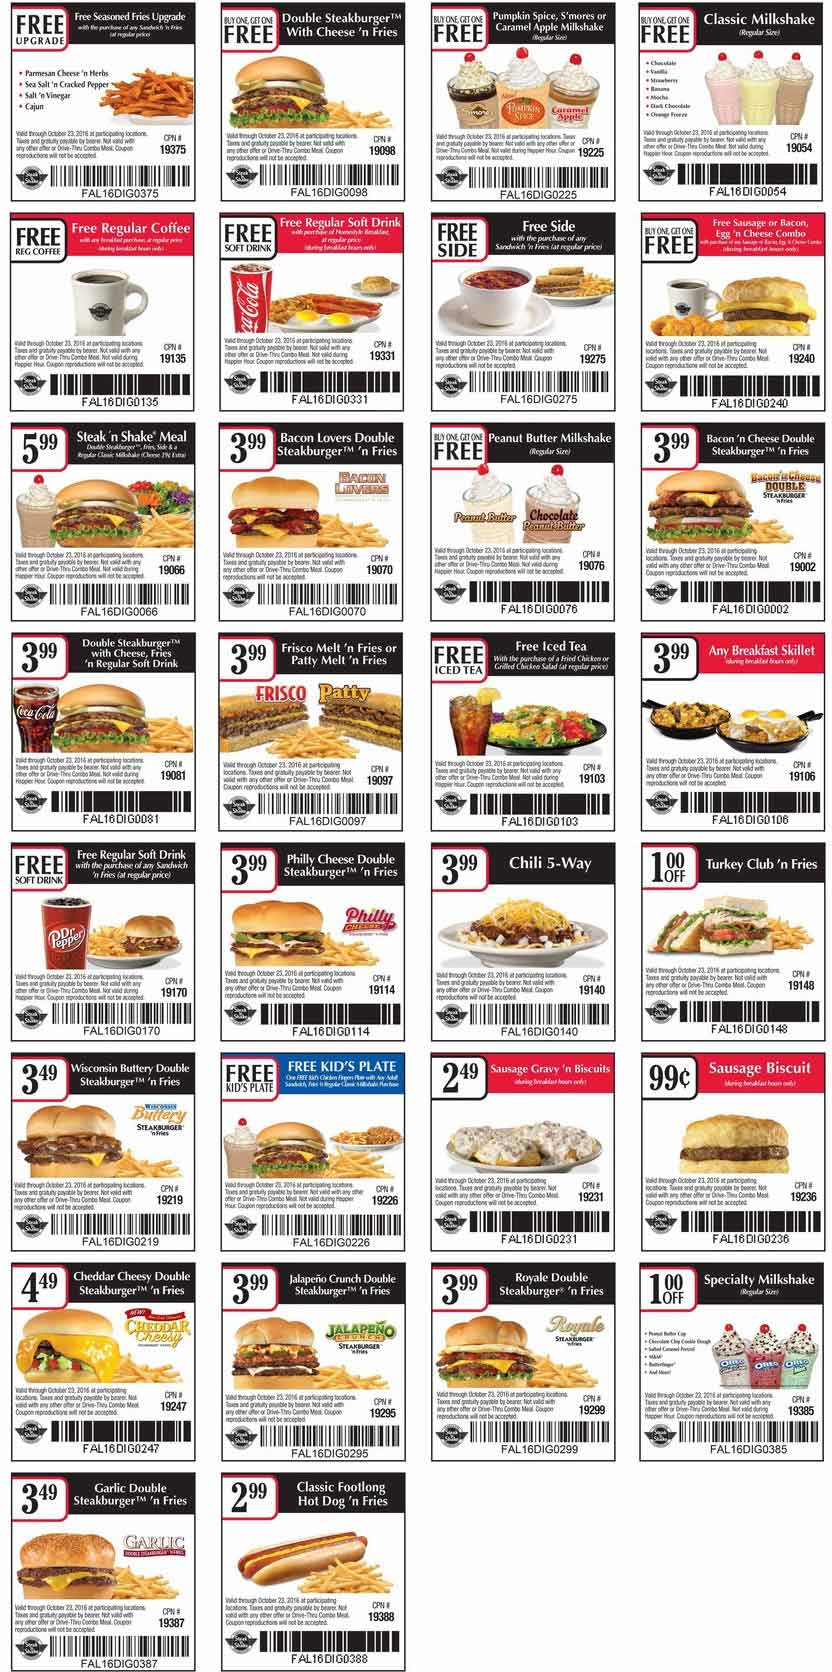 Steak n Shake Coupon March 2017 Second steakburger meal free & more at Steak N Shake